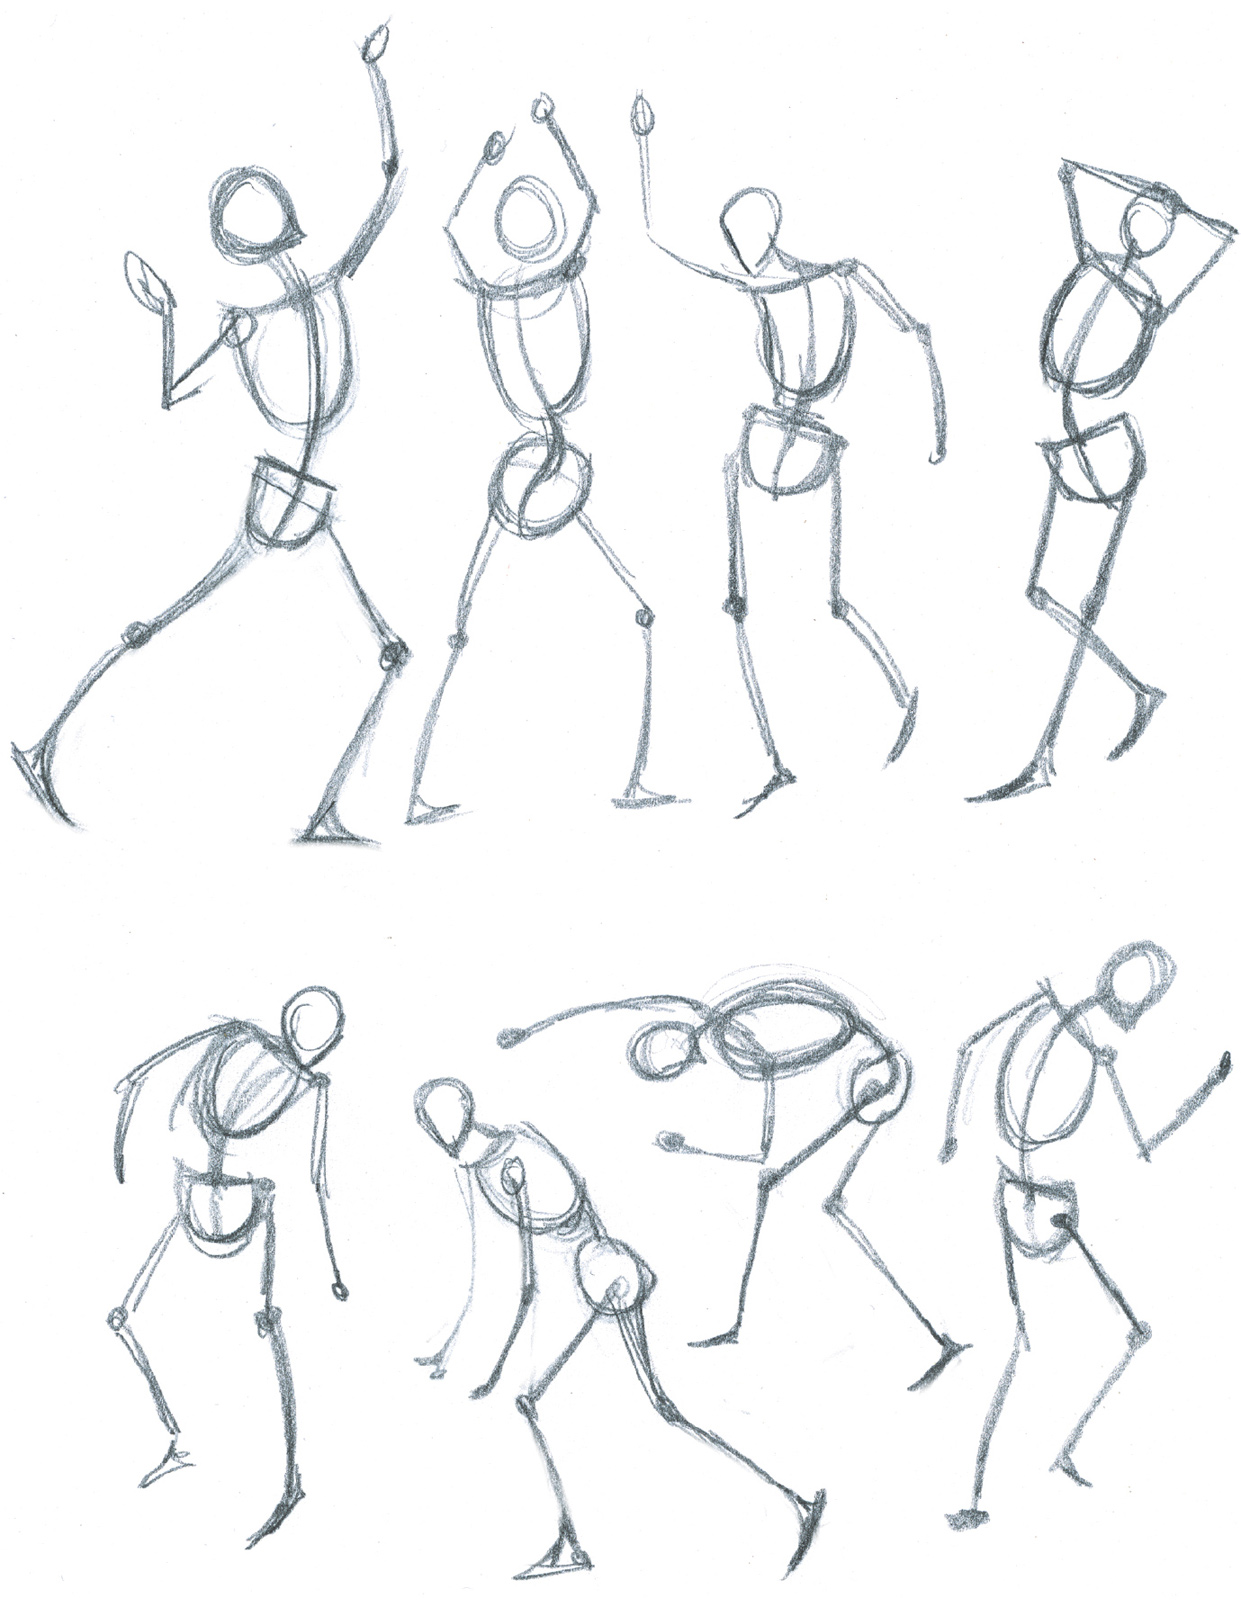 Gesture and Action Drawing - Classic Human Anatomy in Motion: The ...